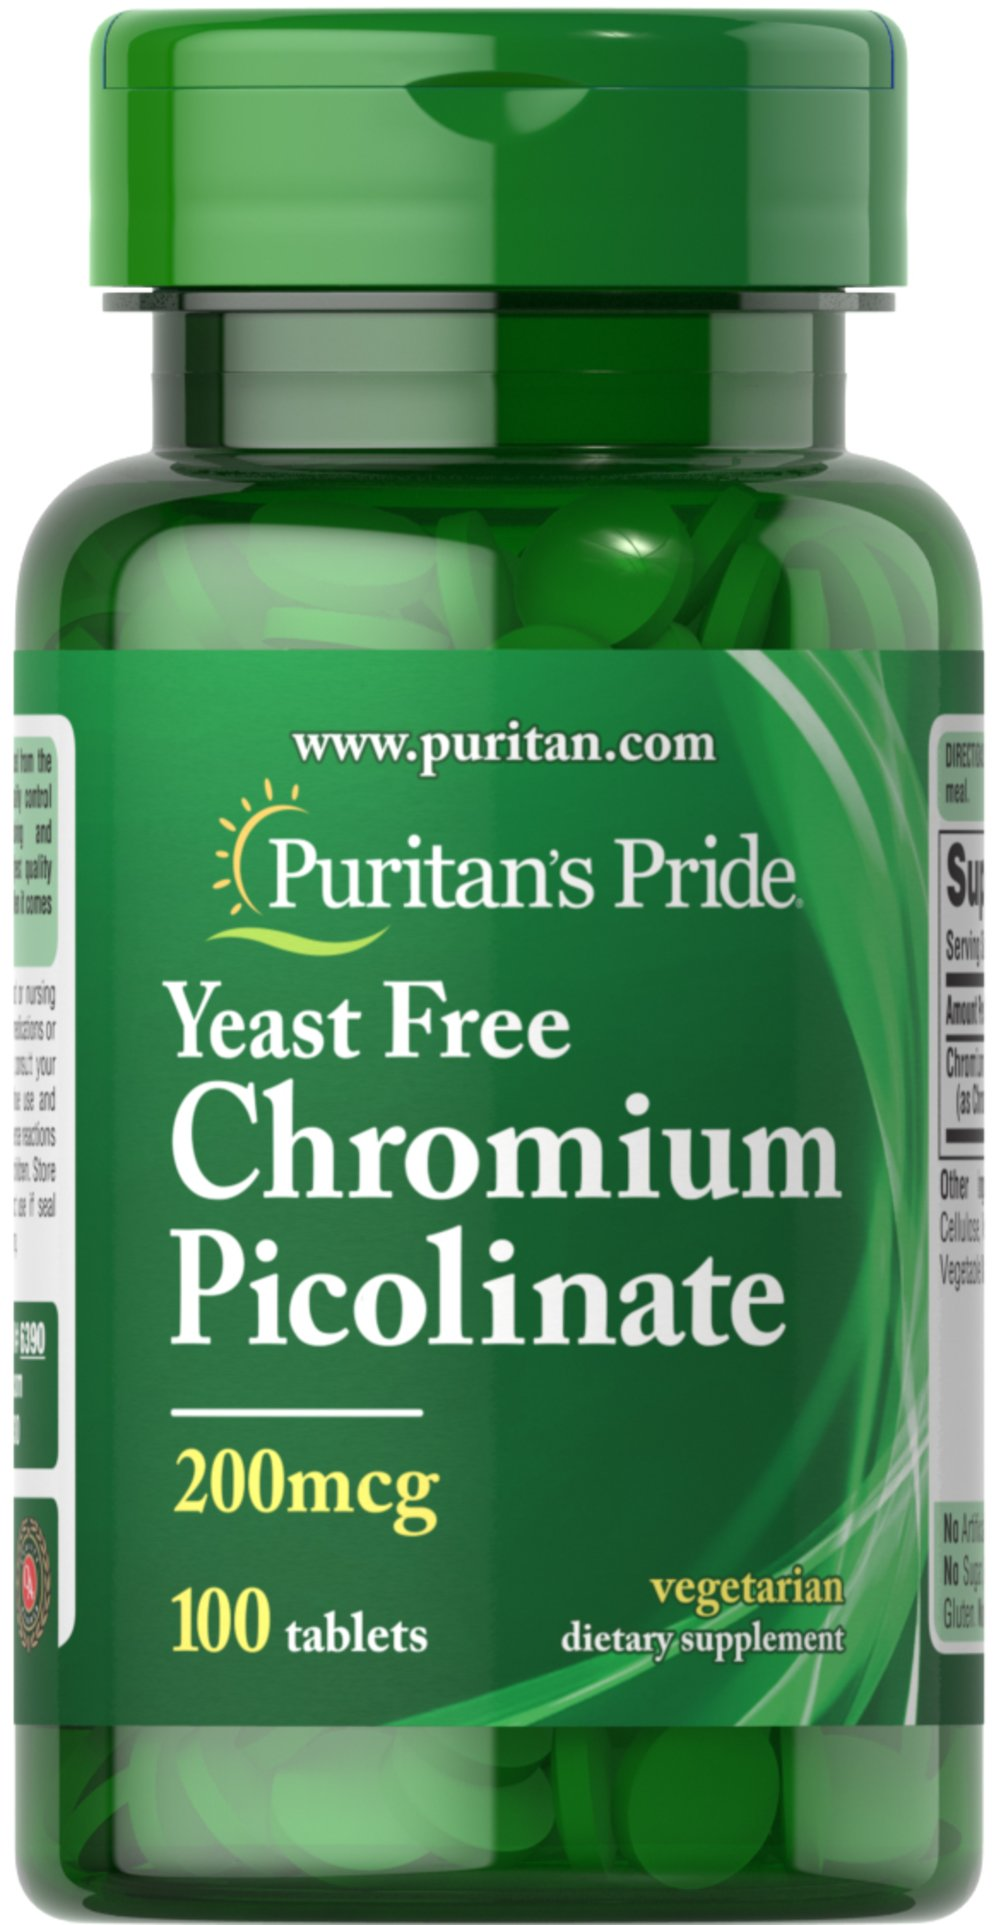 Chromium Picolinate 200 mcg Yeast Free  100 Tablets 200 mcg $4.99